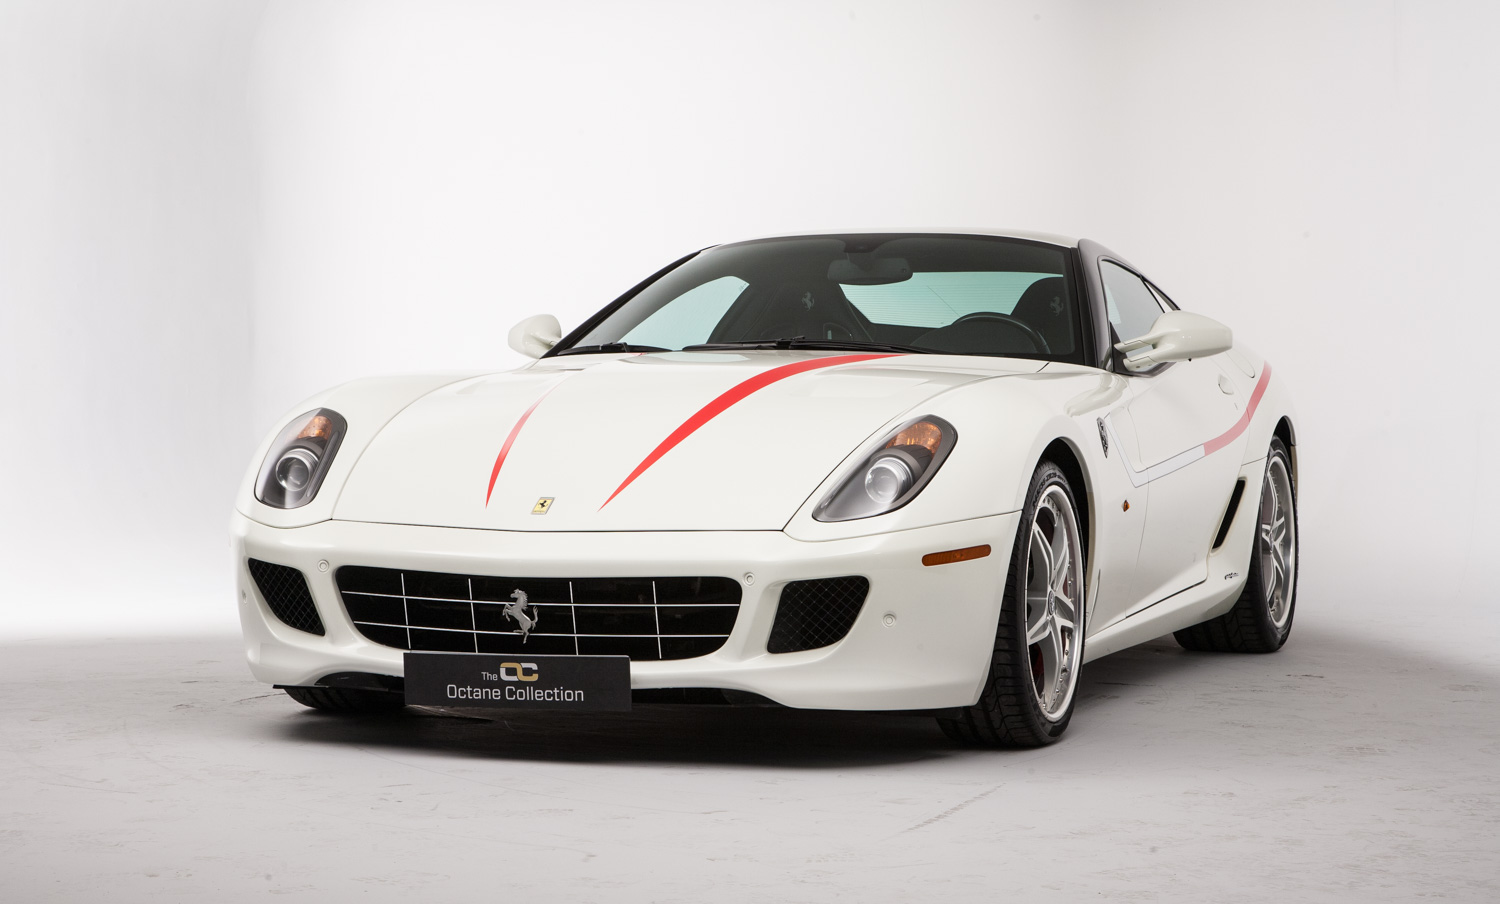 ferrari 599 gtb fiorano hgte the octane collection. Black Bedroom Furniture Sets. Home Design Ideas